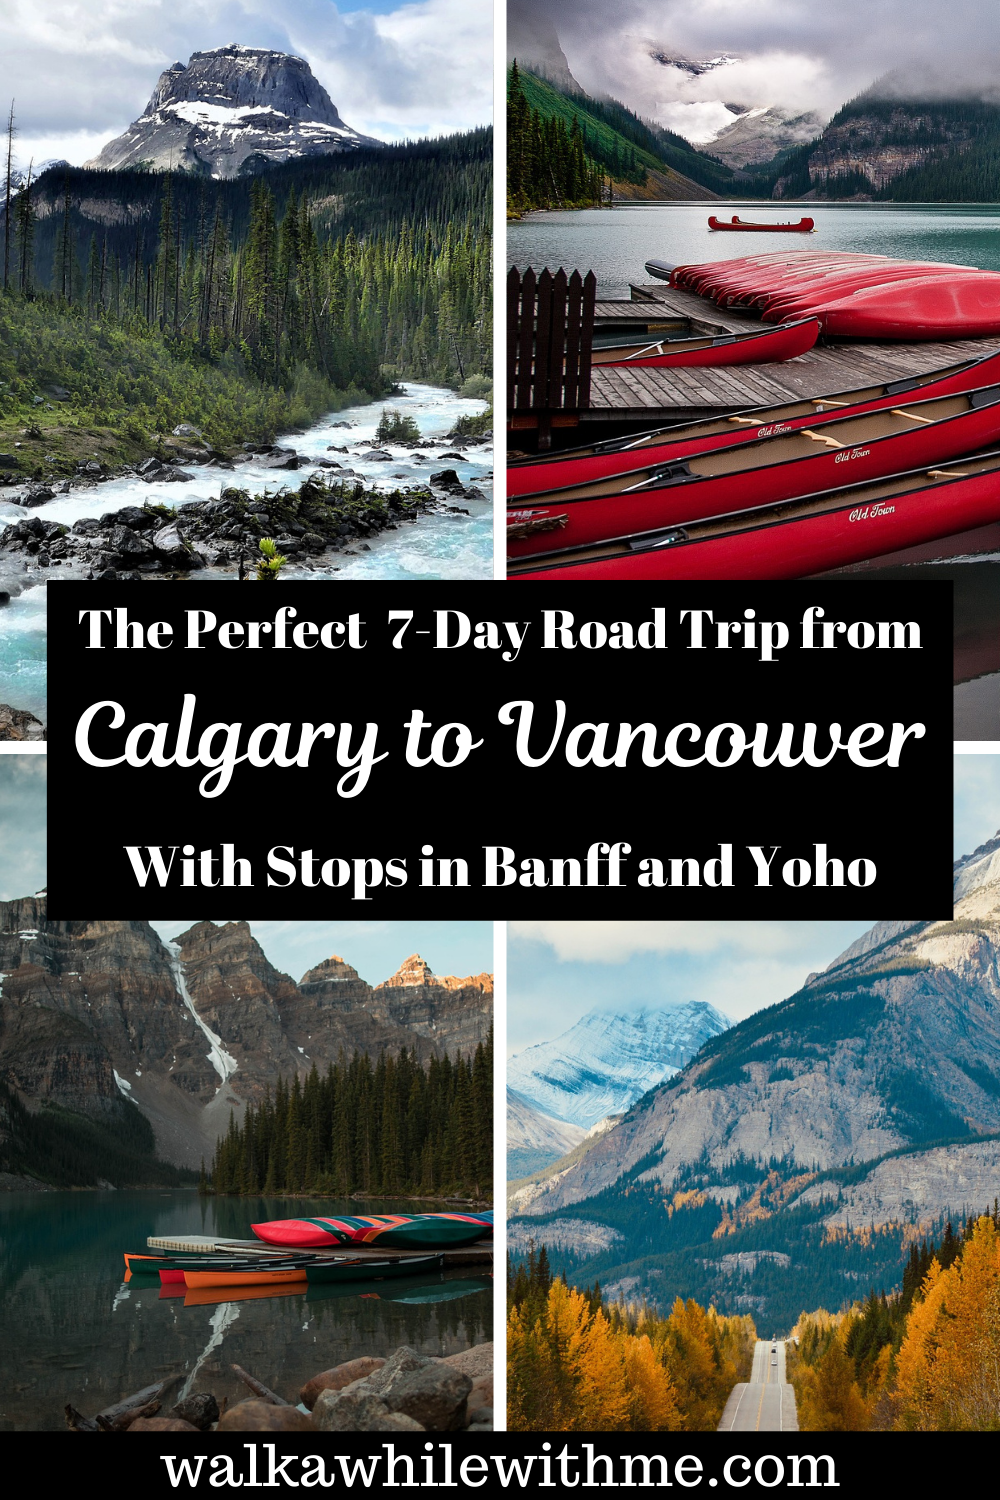 The Perfect 7-Day Road Trip from Calgary to Vancouver, With Stops in Banff and Yoho National Park!